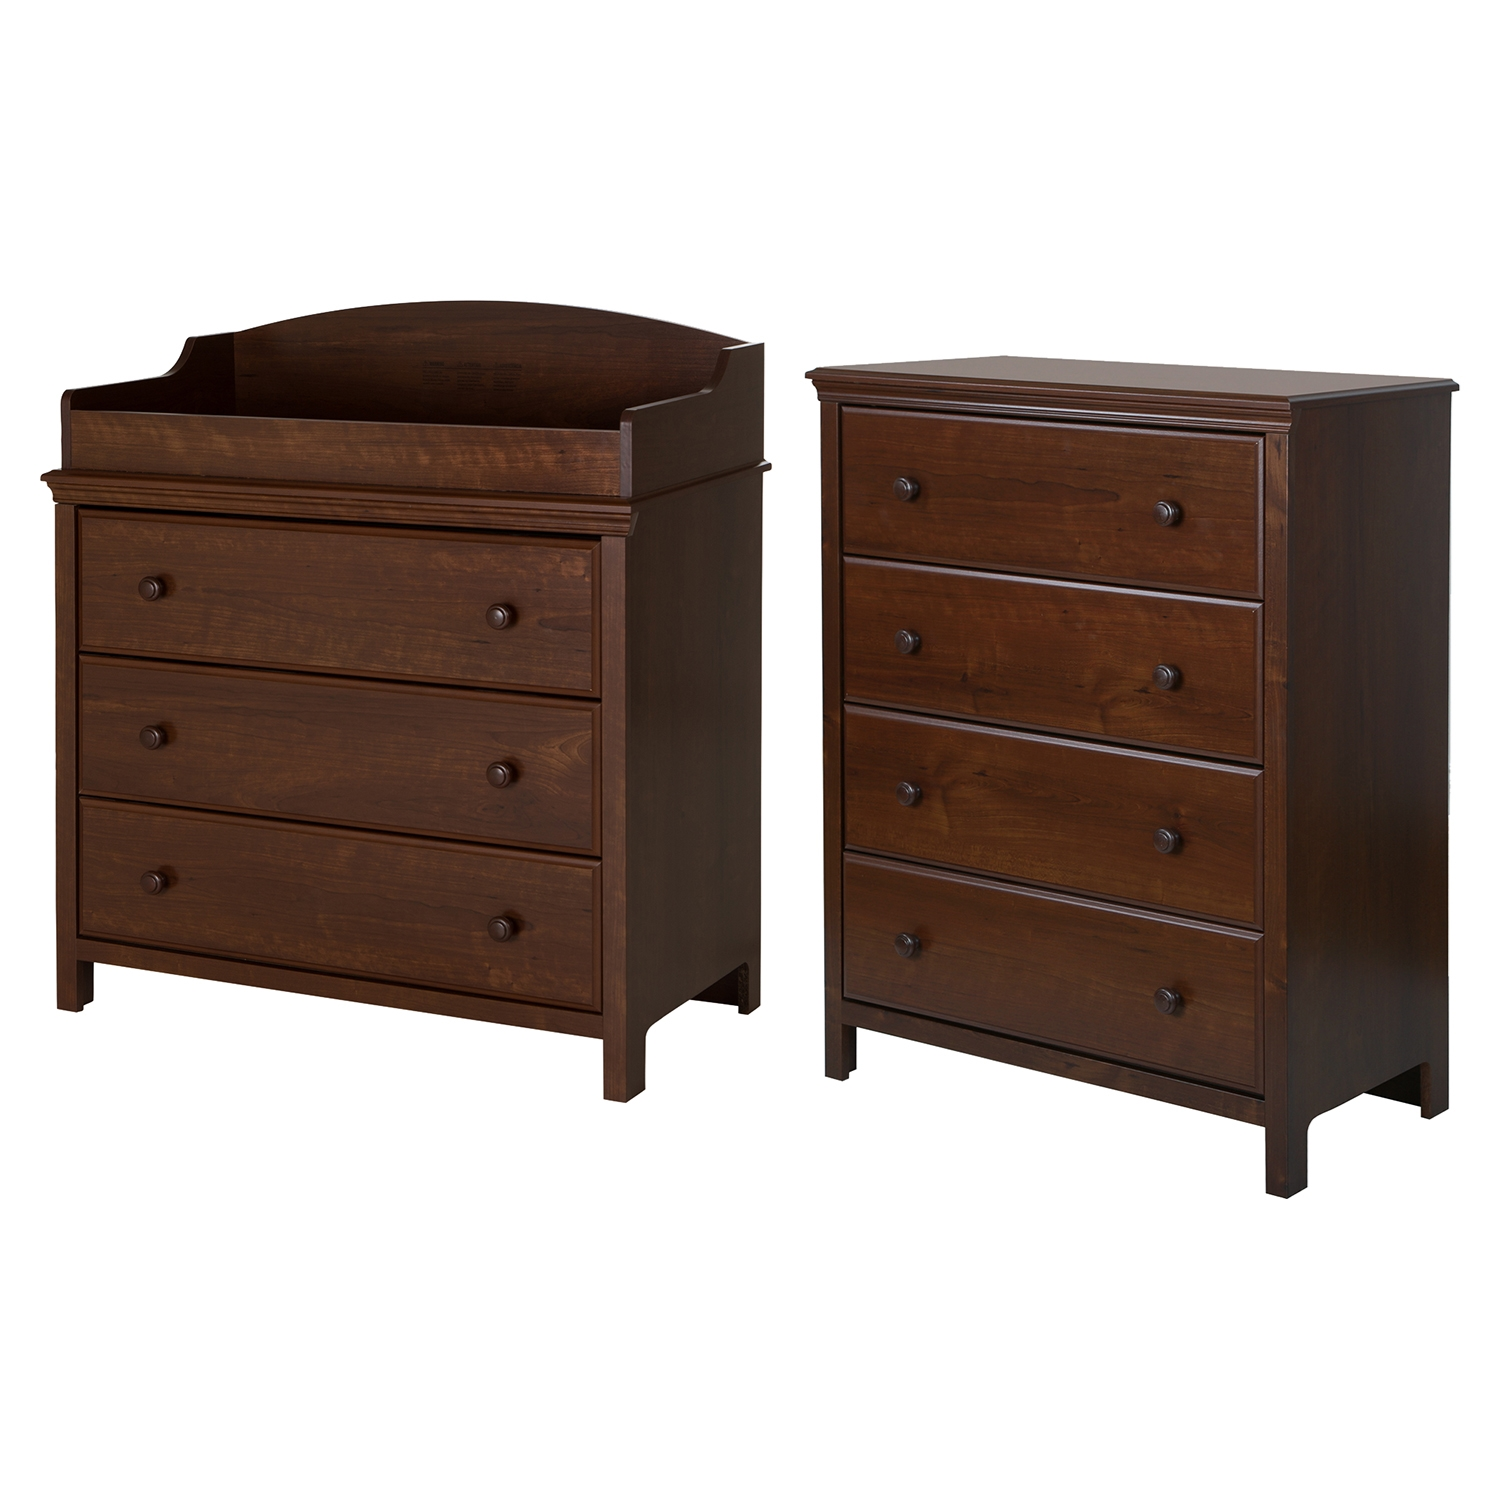 Cotton Candy Changing Table with 4 Drawers Chest - Sumptuous Cherry - SS-10059